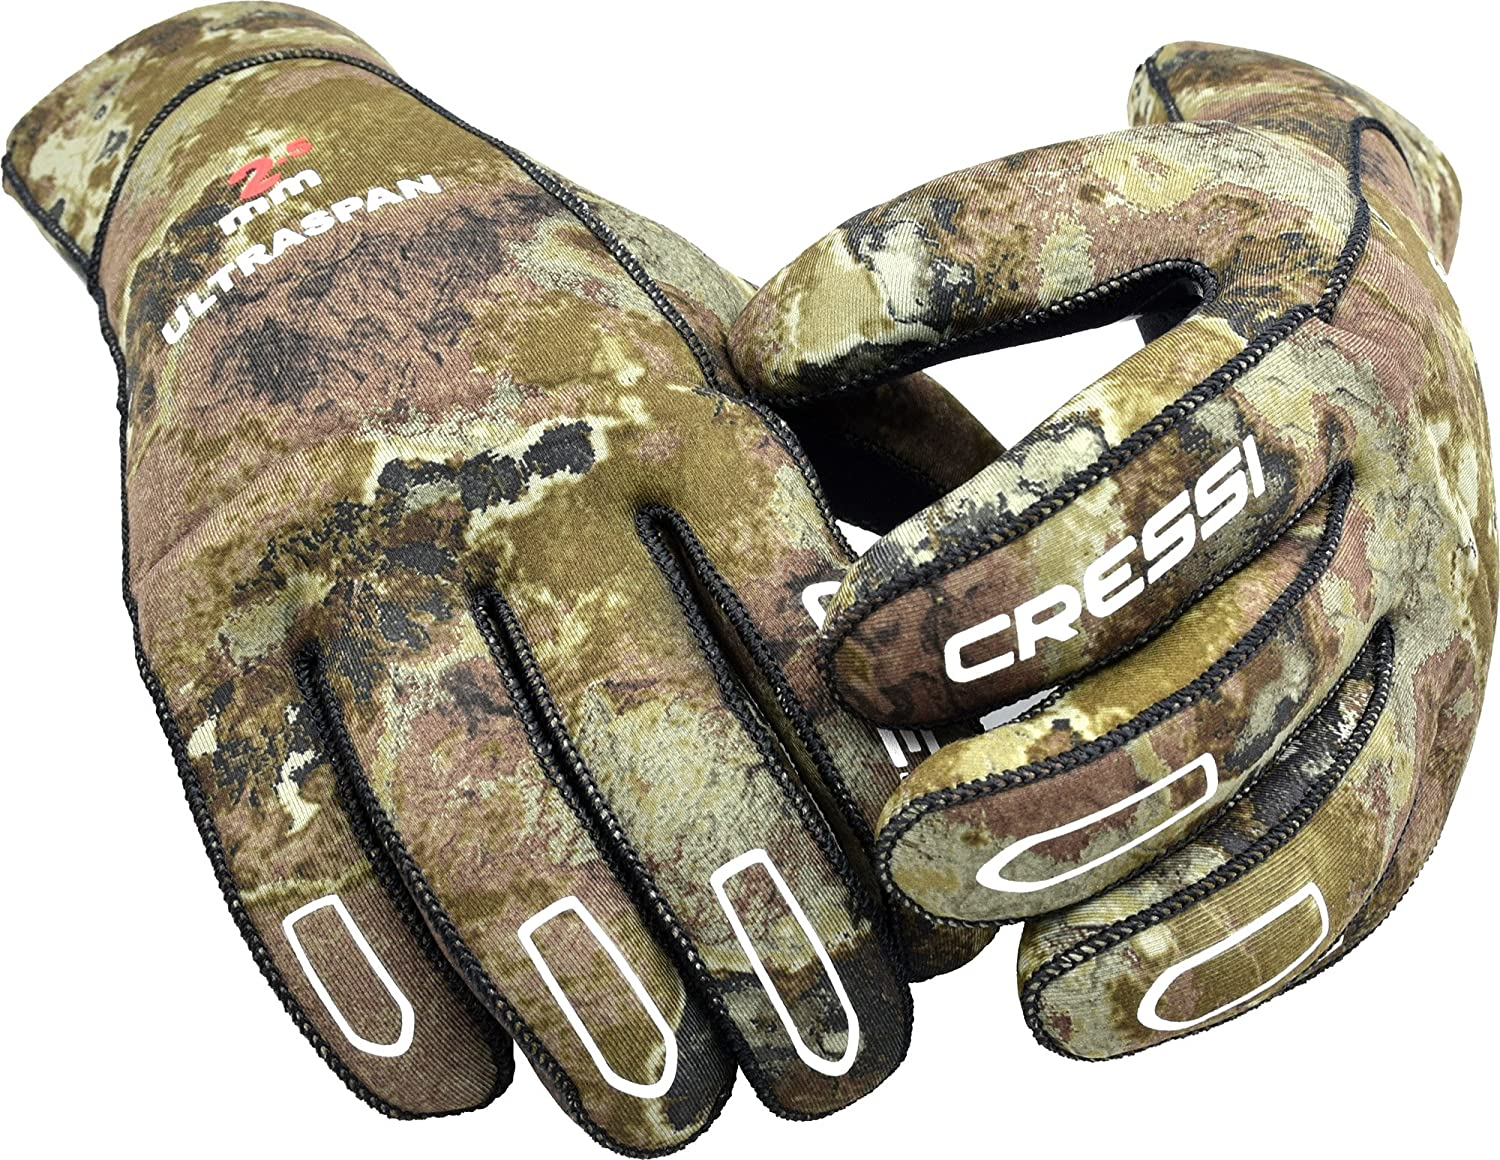 Cressi ULTRASPAN, 2.5mm Camo Diving Spearfishing Gloves - Cressi: Quality Since 1946